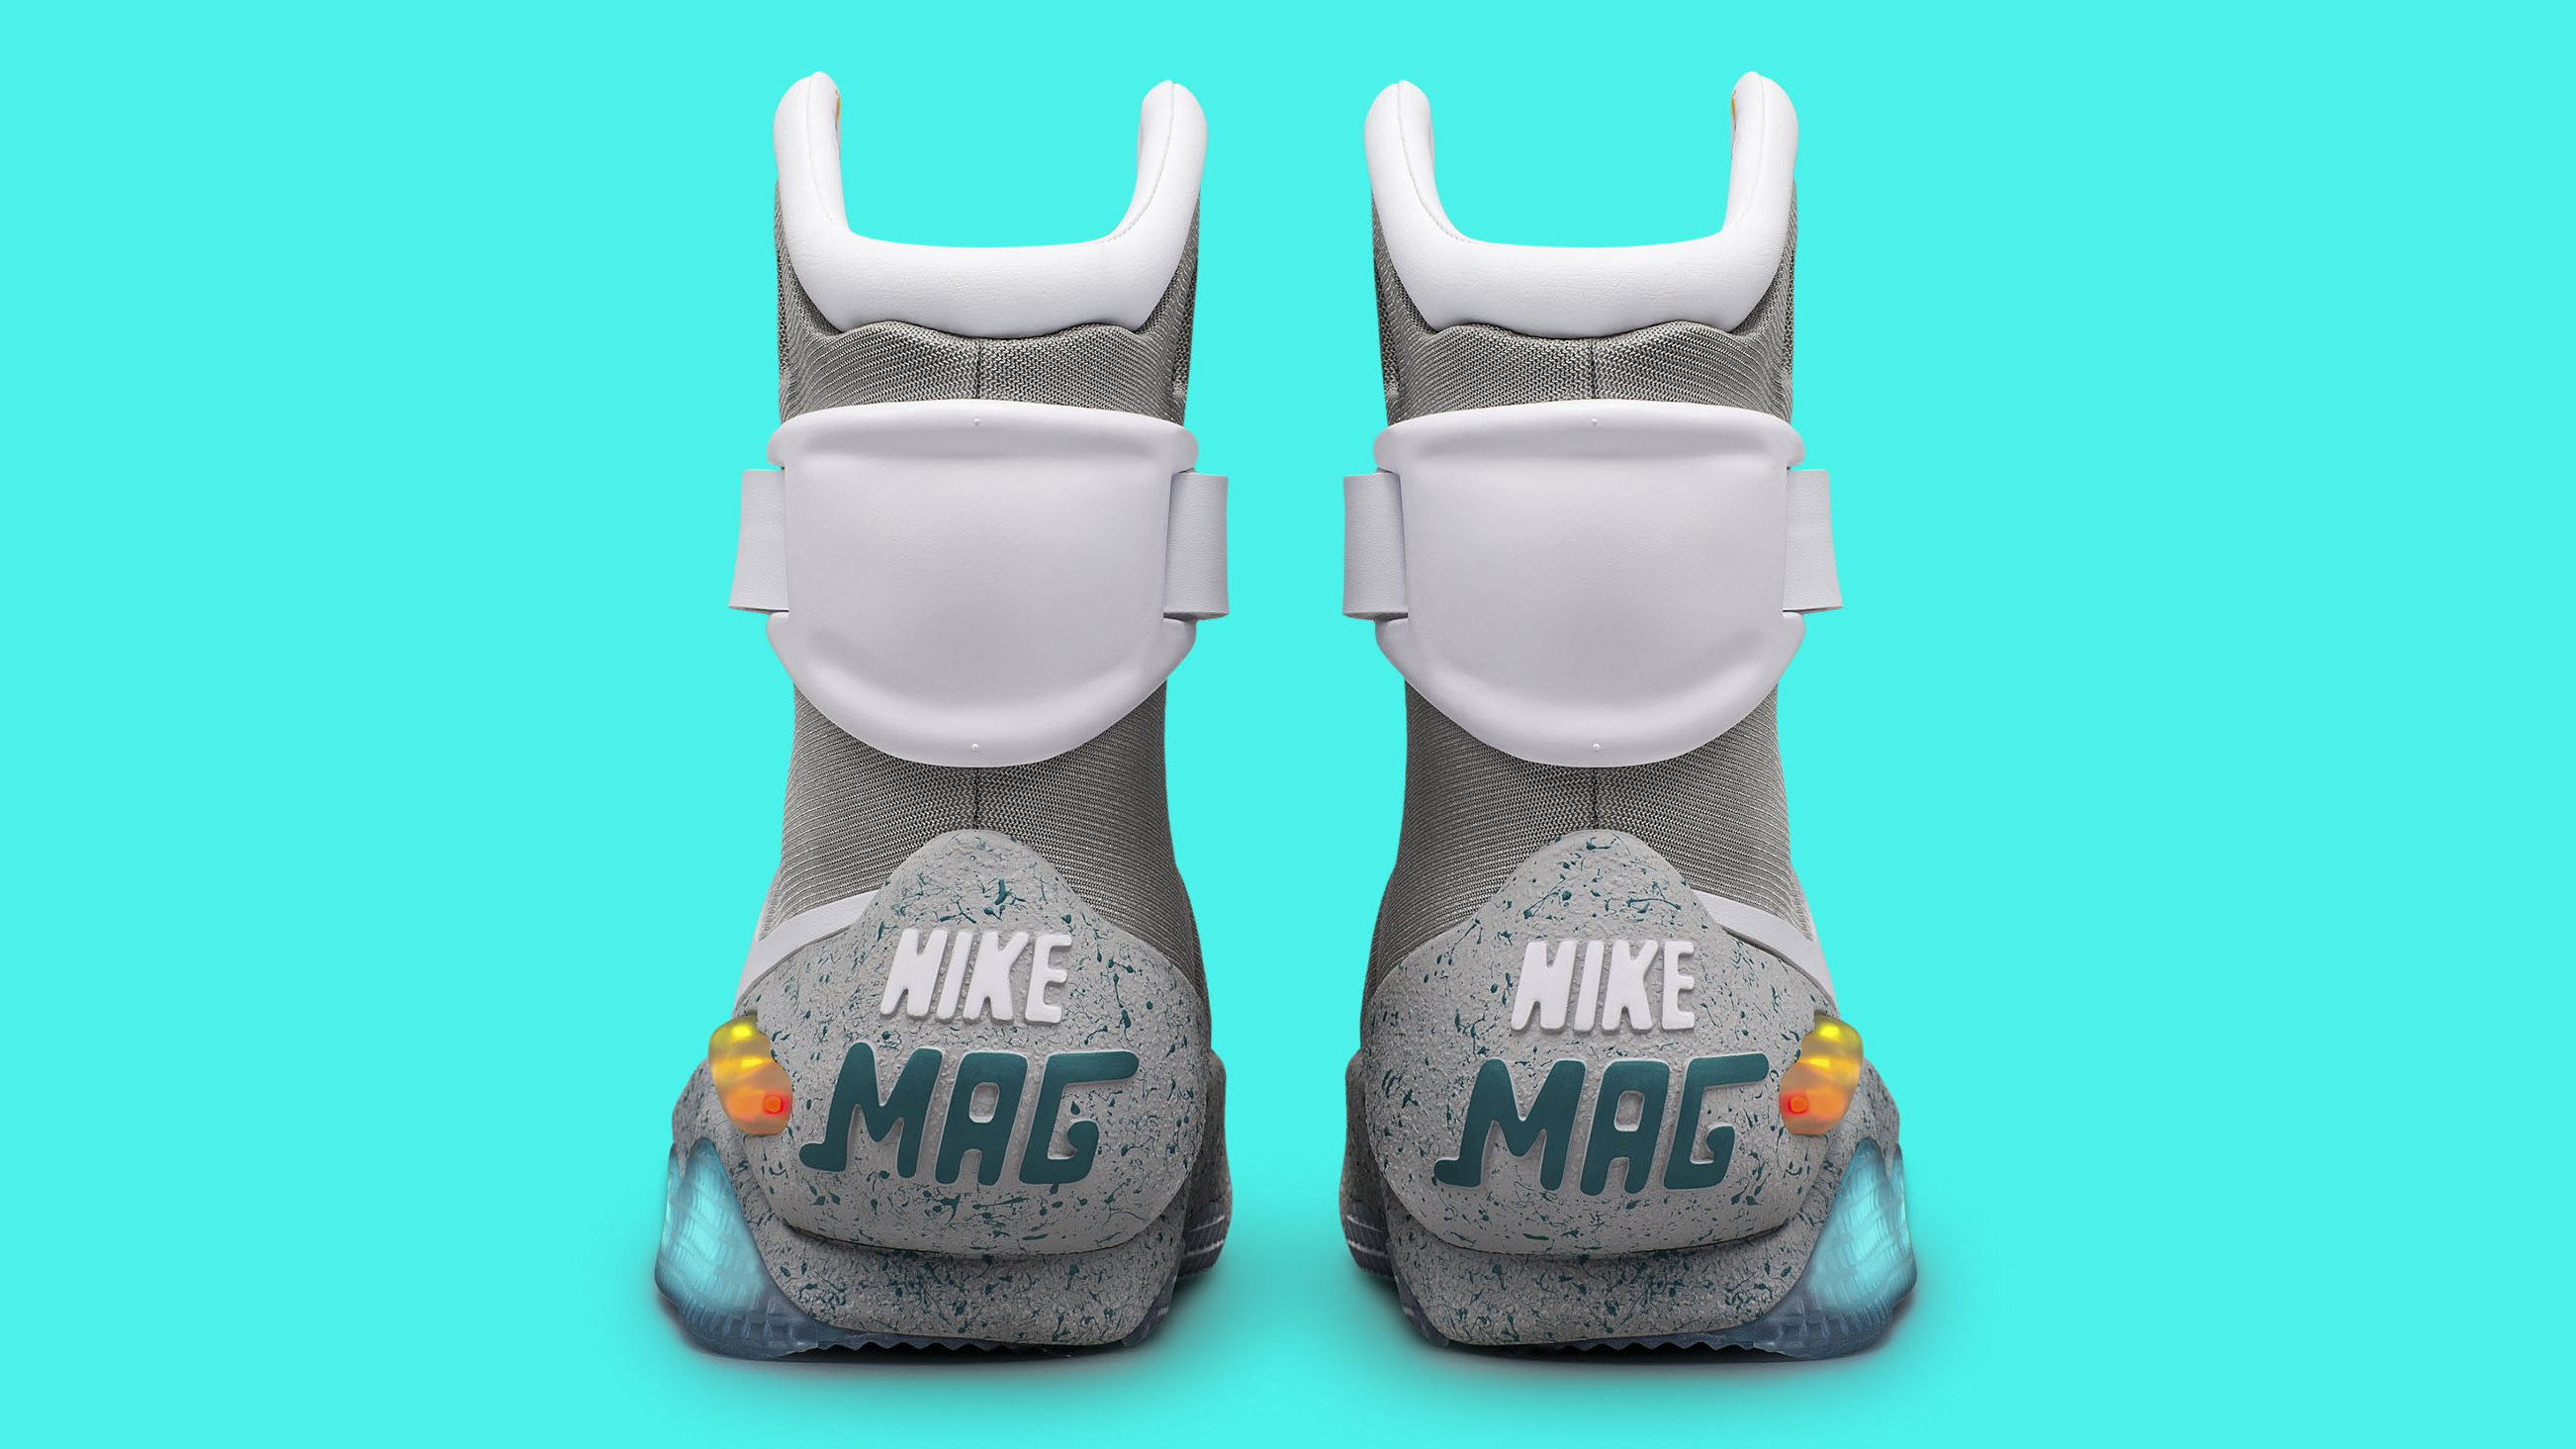 57aa9bac359 How Much Are Nike Mag Back to the Future Sneakers